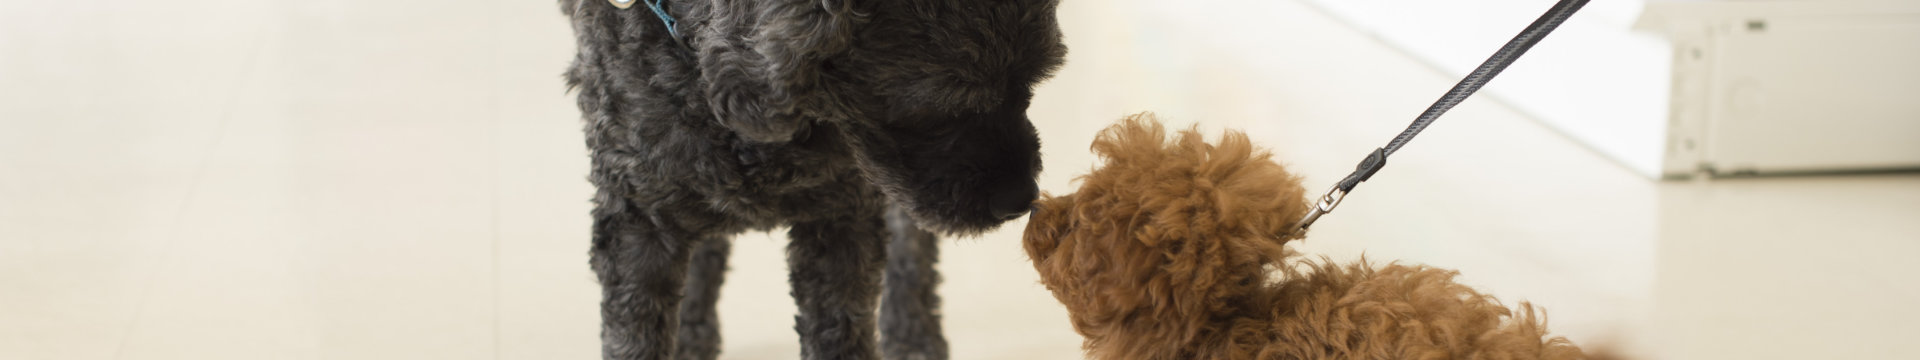 Two dogs meeting